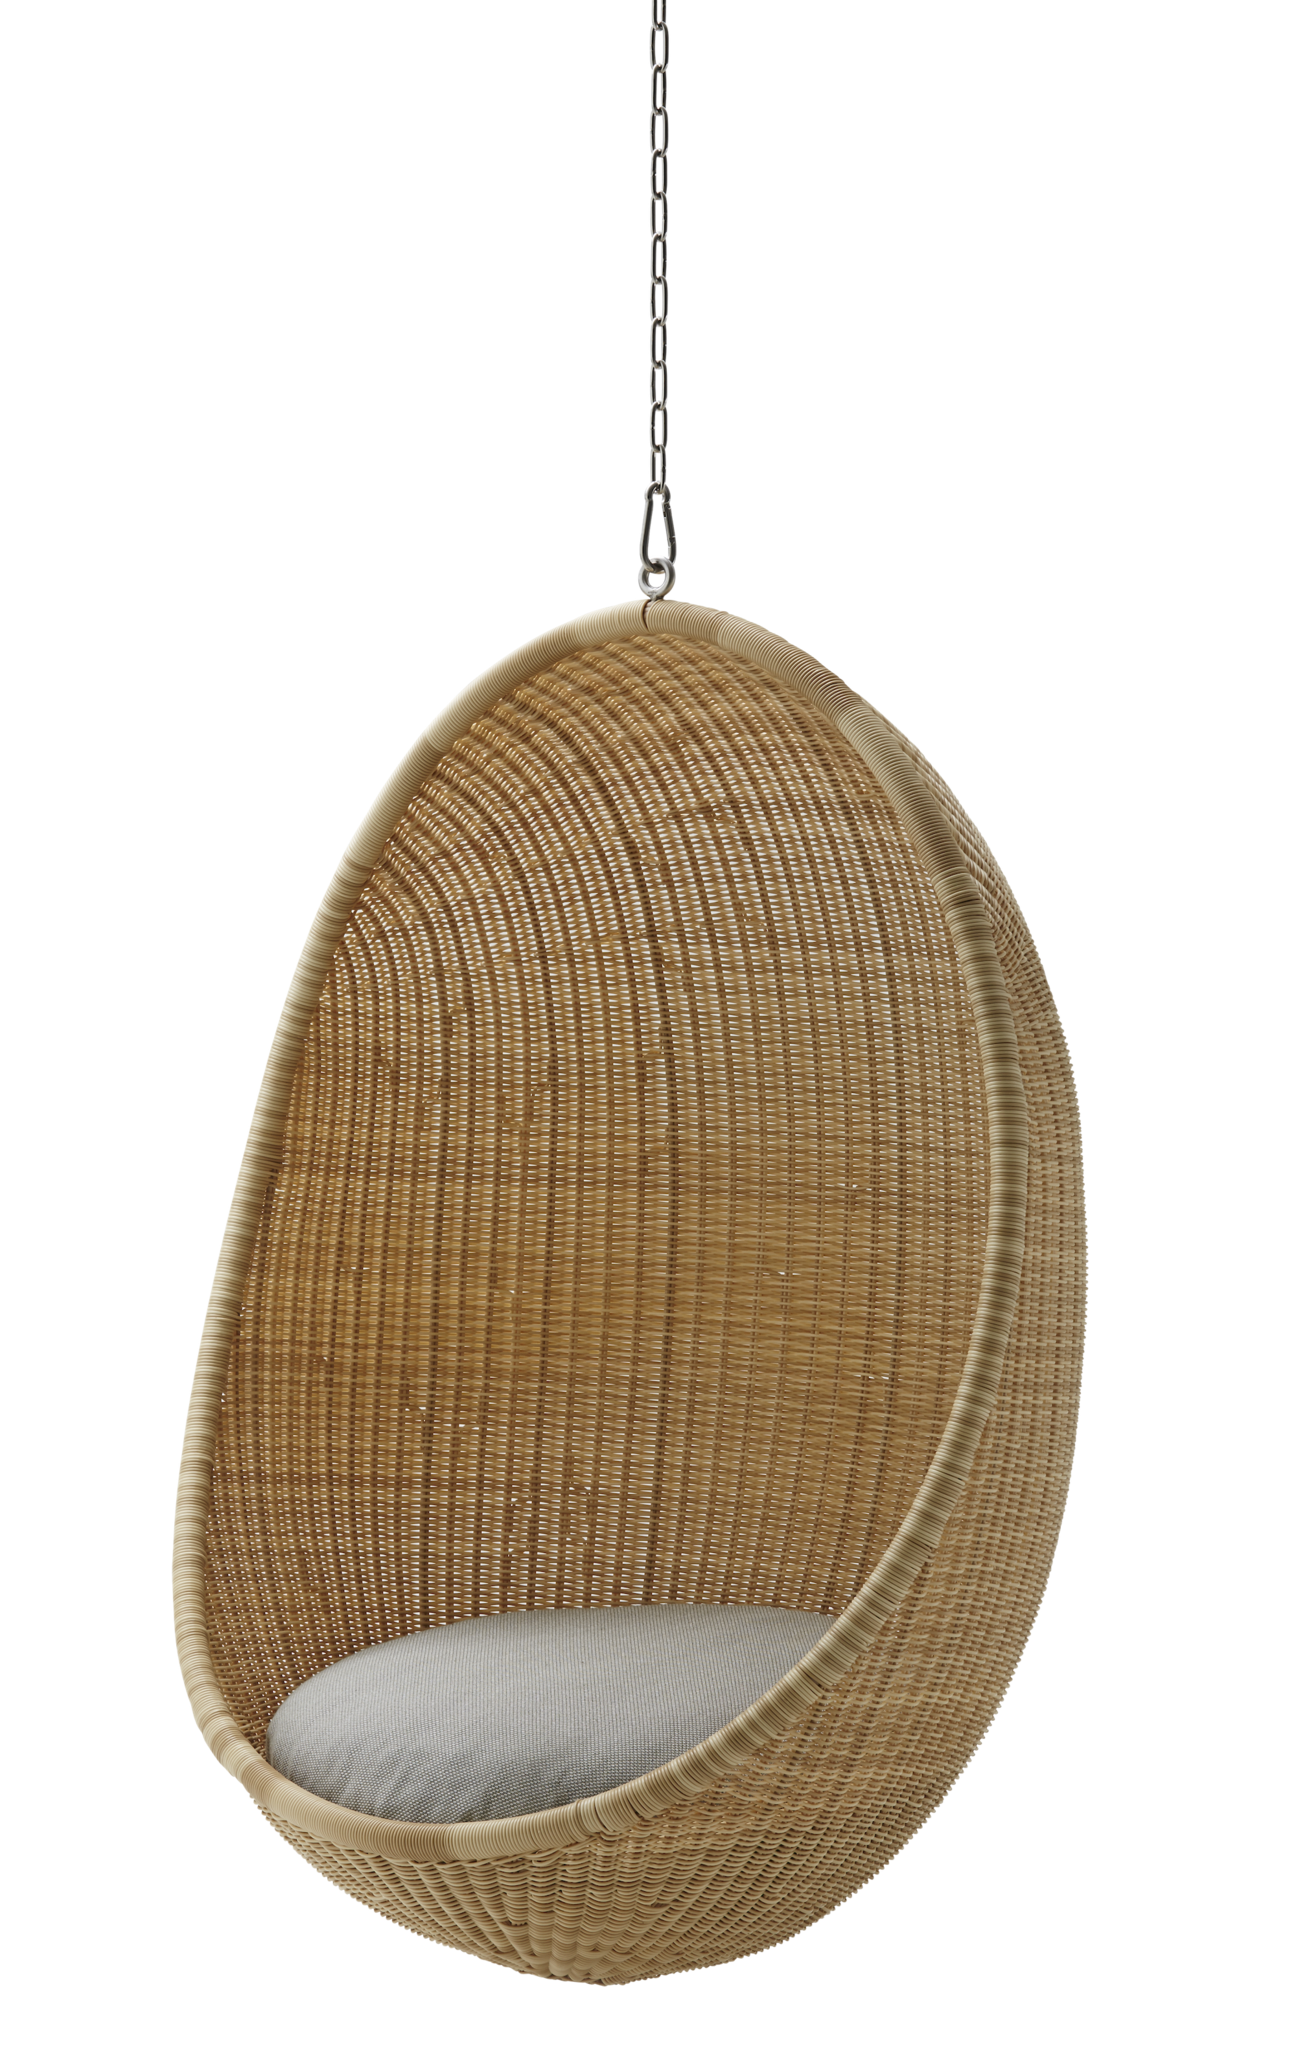 Nanna Ditzel Hanging Egg Chair Exterior Hanging swing